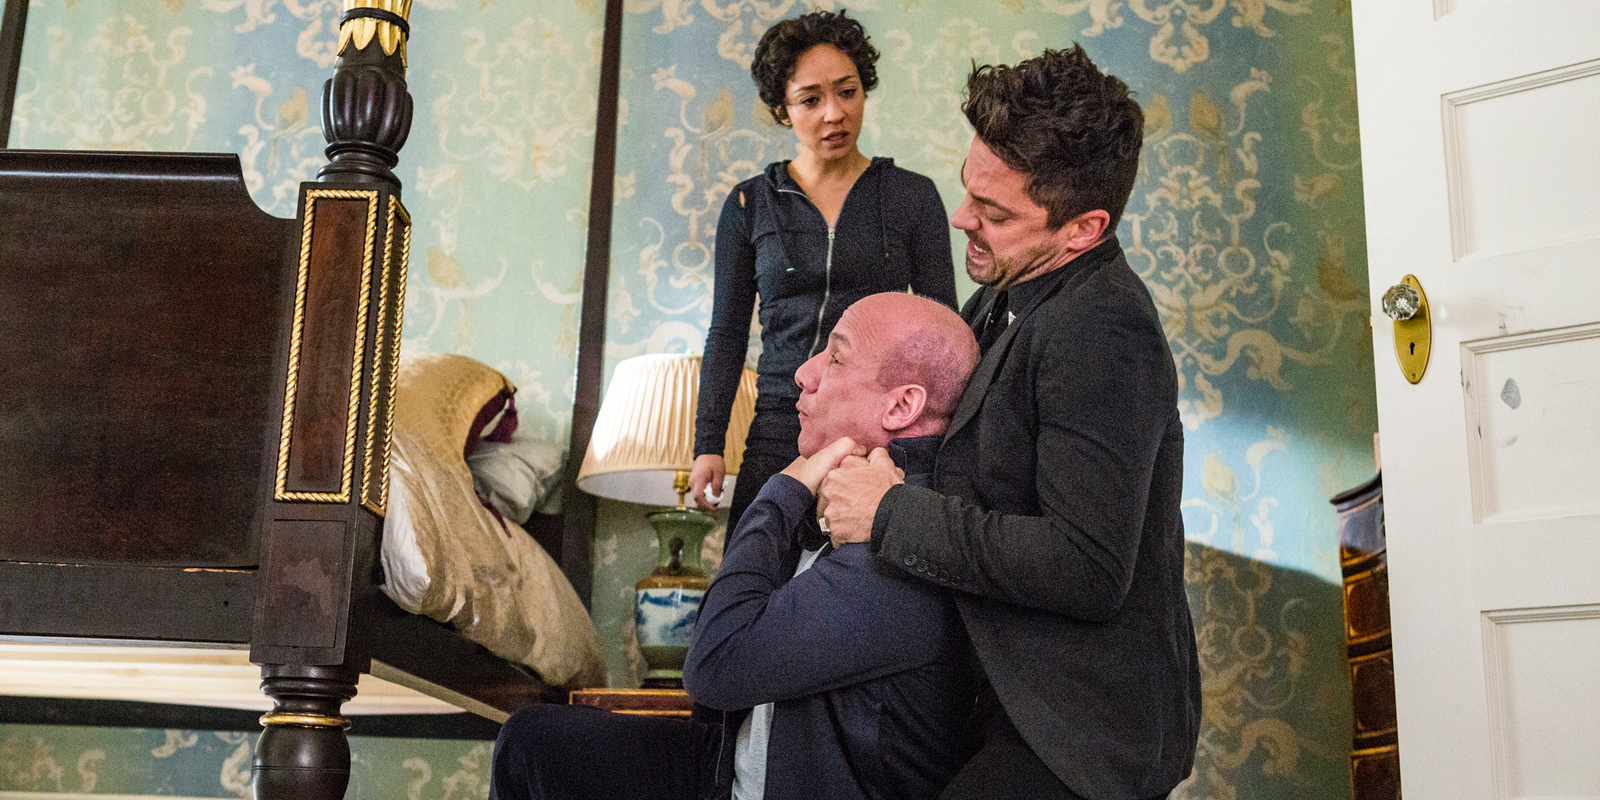 Ruth Negga Paul Ben Victor and Dominic Cooper in Preacher Season 2 Episode 5